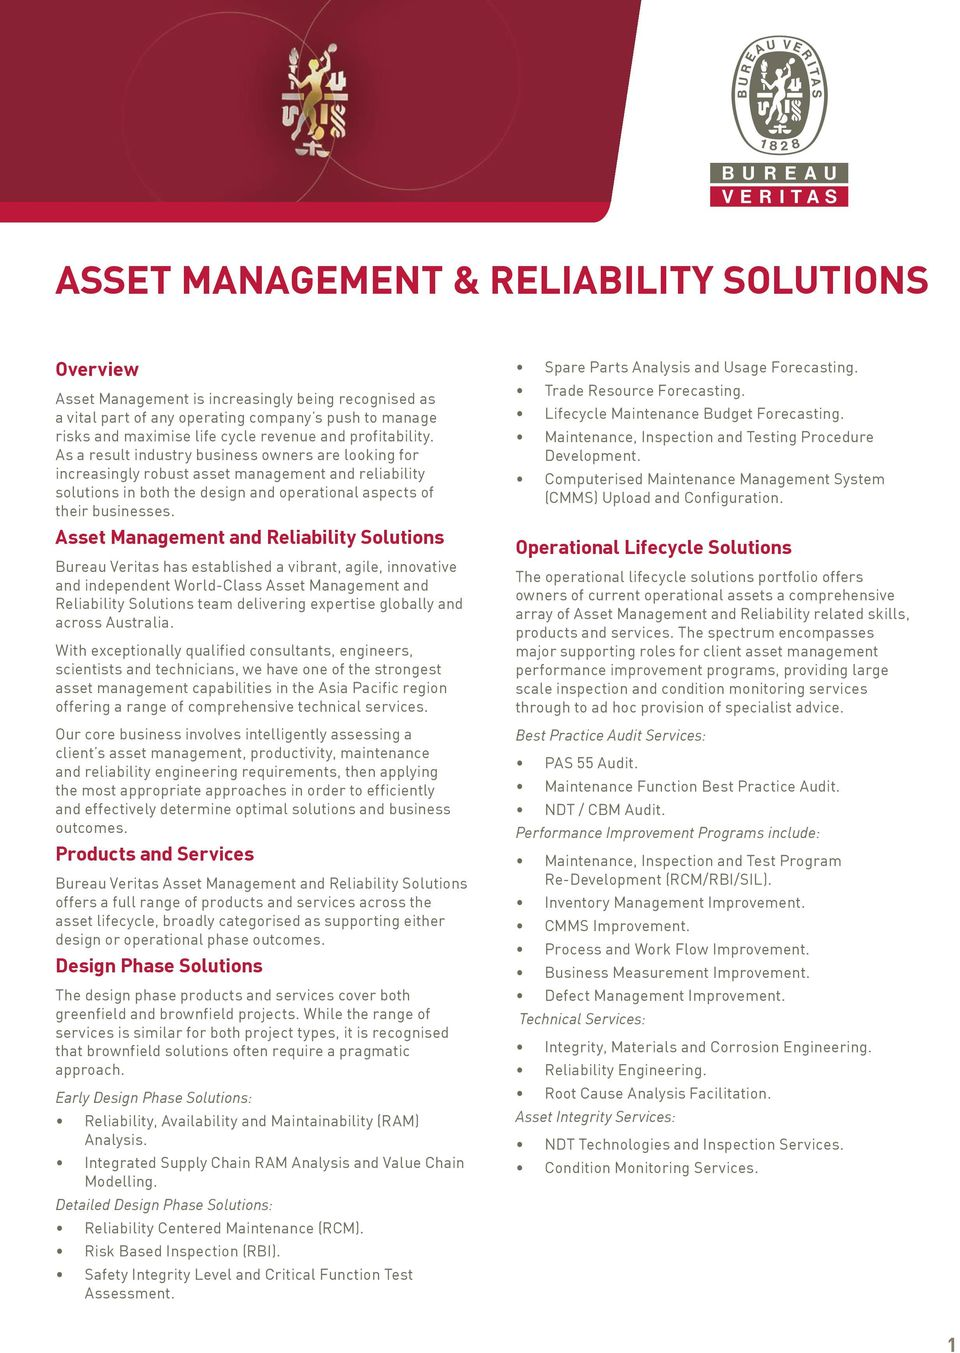 Asset Management and Reliability Solutions Bureau Veritas has established a vibrant, agile, innovative and independent World-Class Asset Management and Reliability Solutions team delivering expertise